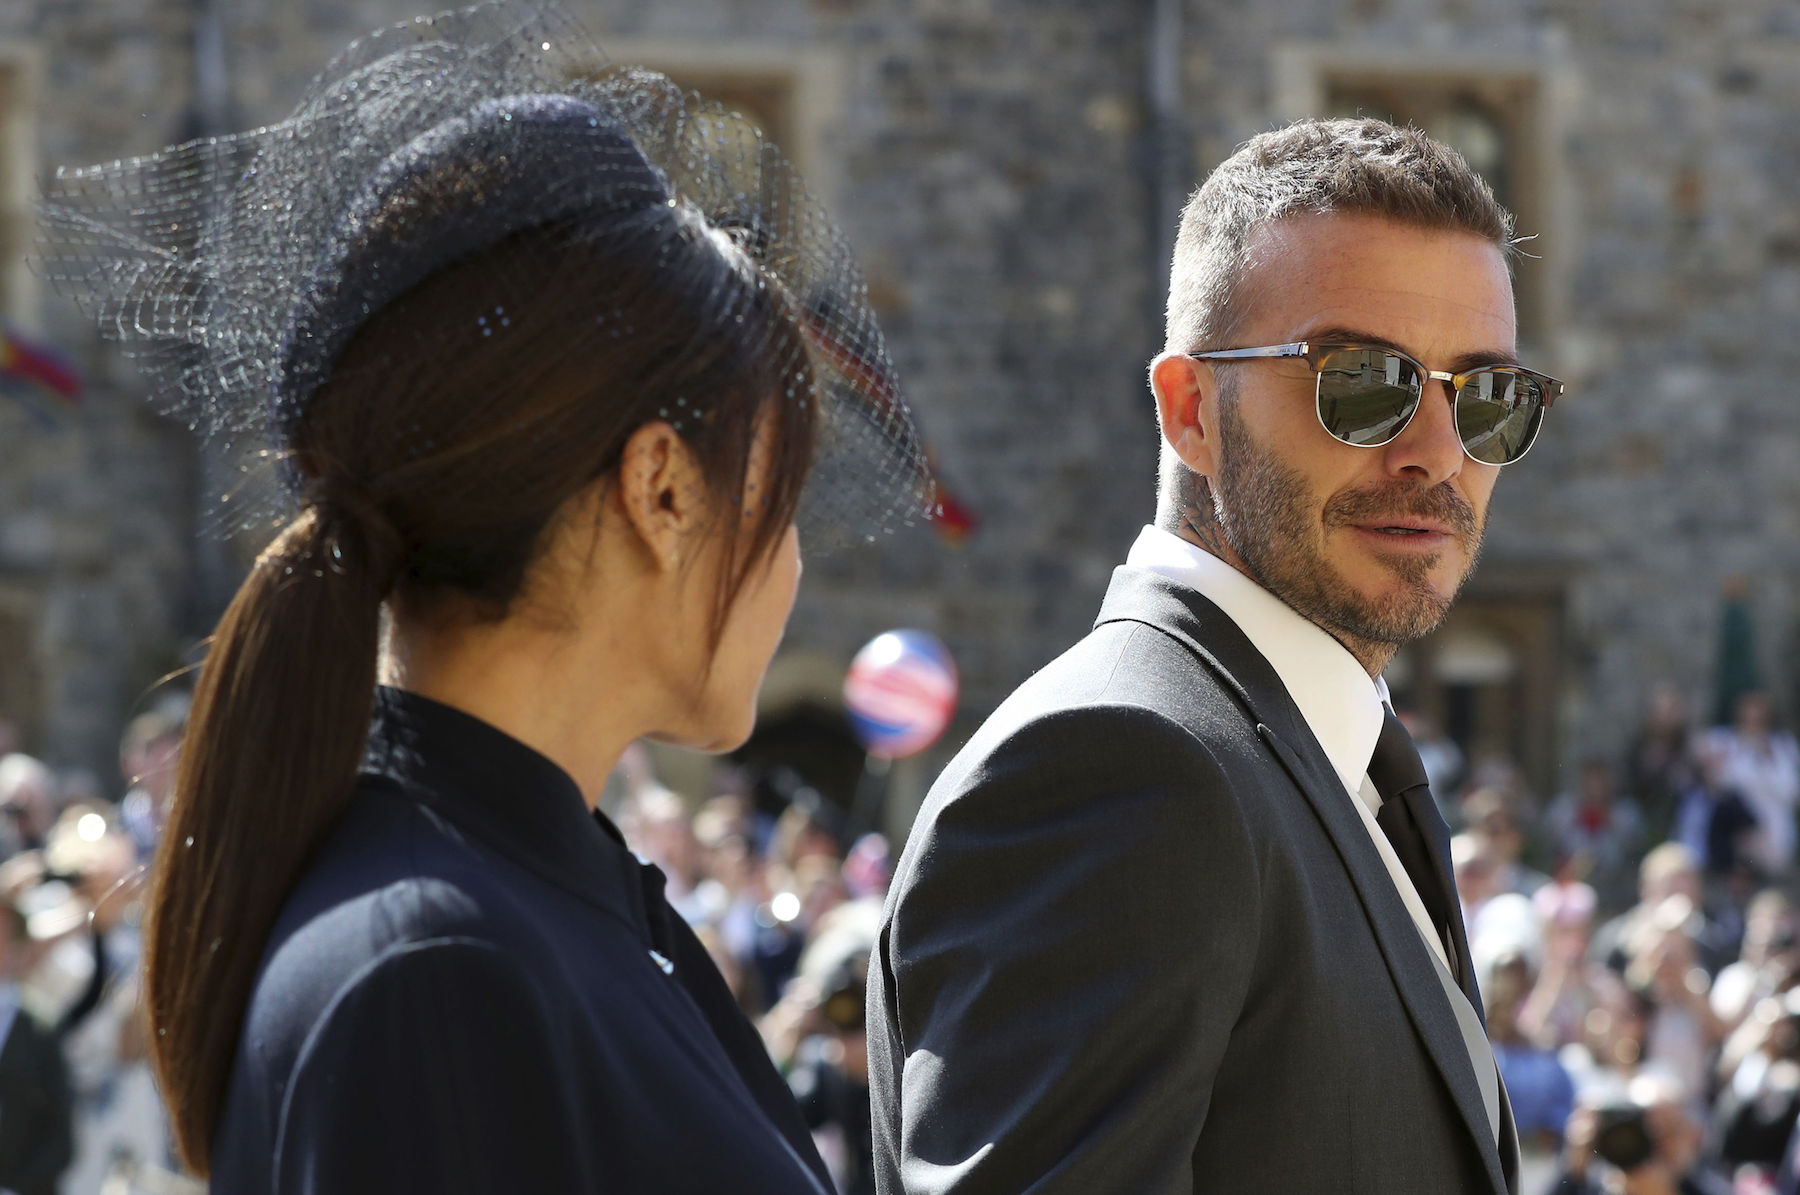 <div class='meta'><div class='origin-logo' data-origin='AP'></div><span class='caption-text' data-credit='Gareth Fuller/pool photo via AP'>David Beckham and Victoria Beckham arrive for the wedding ceremony of Prince Harry and Meghan Markle at St. George's Chapel in Windsor Castle.</span></div>